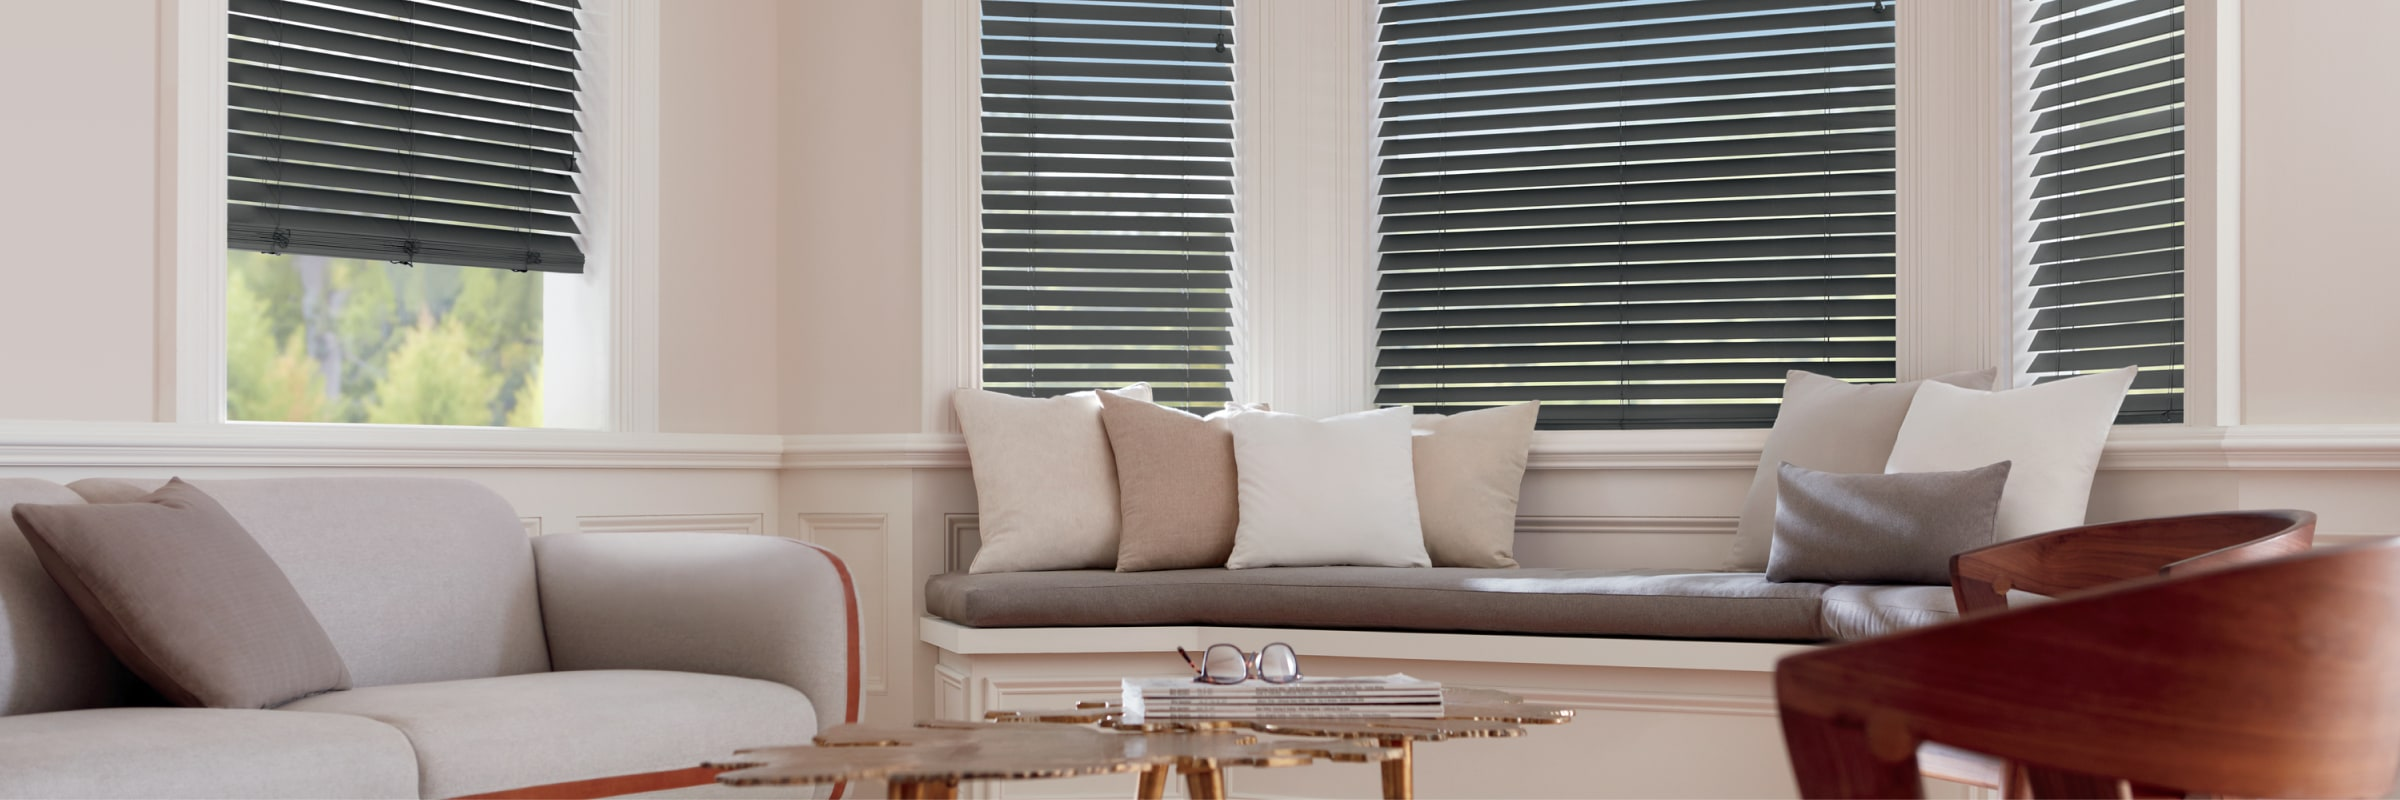 Wooden blinds in Matte Nightingale - Parkland